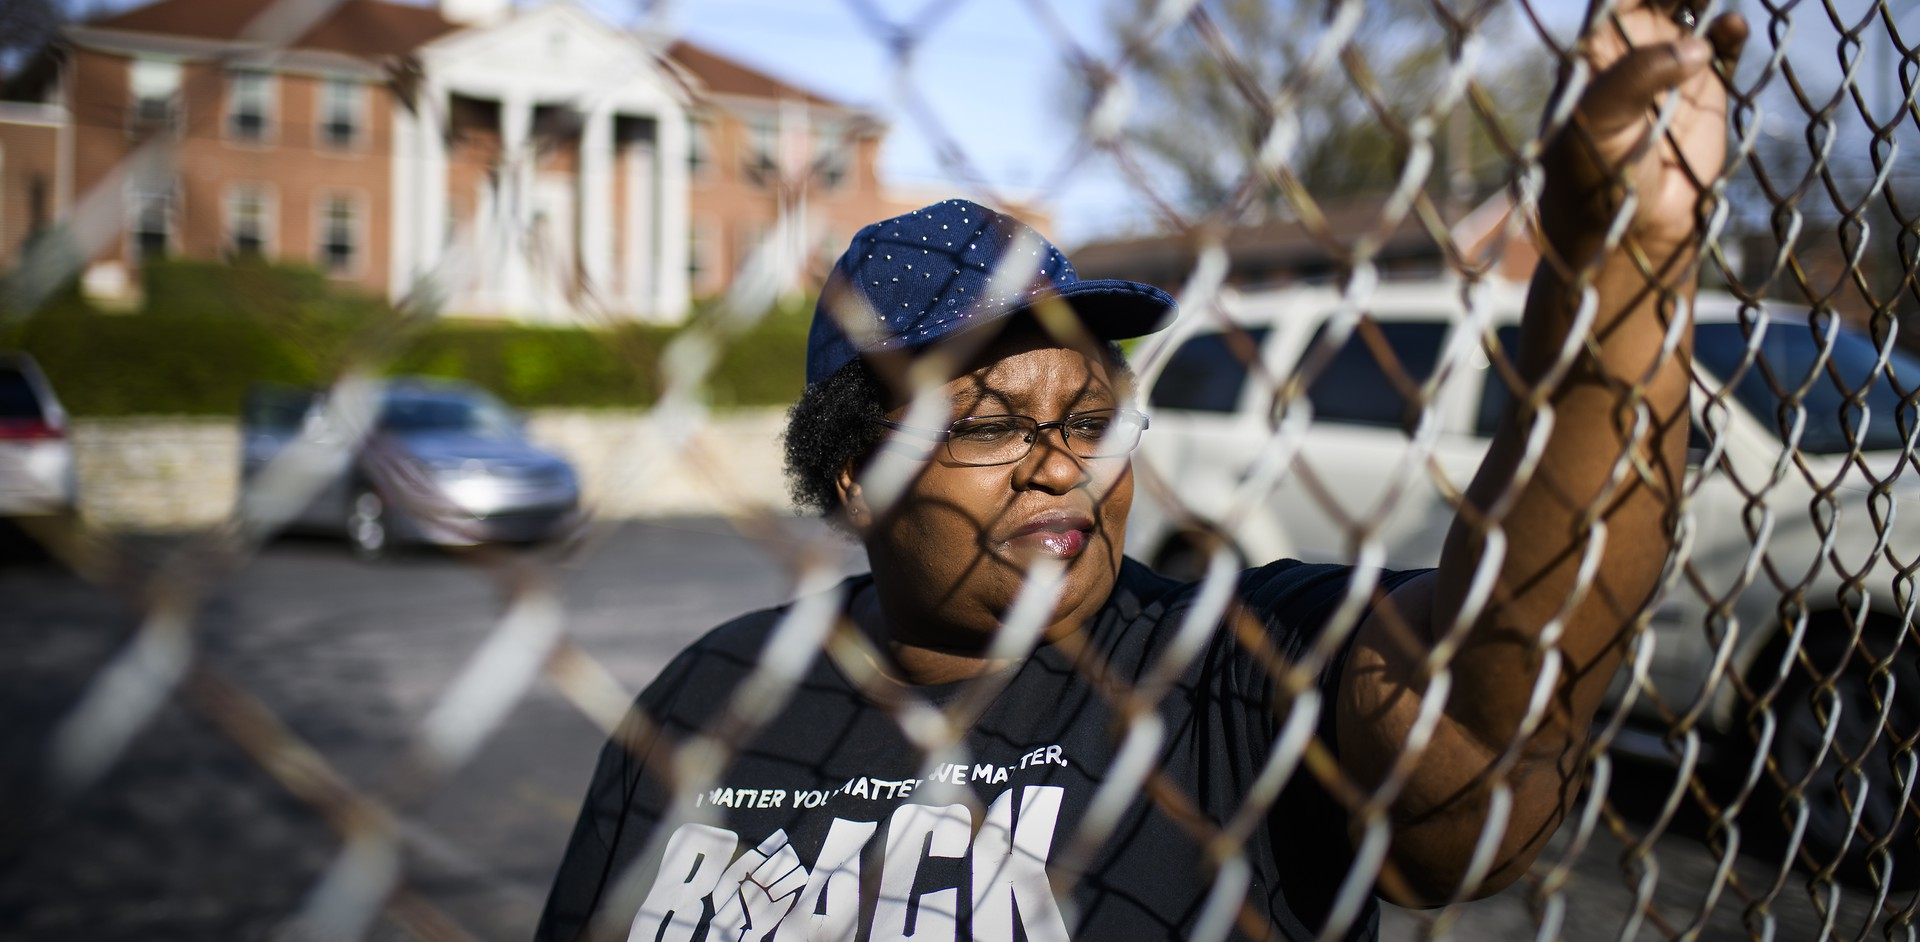 Sheila Clemmons Lee stands in the parking lot of the James A. Cayce Homes in East Nashville where Officer Joshua Lippert of the Metro Nashville Police Department shot and killed her son, Jocques Clemmons.